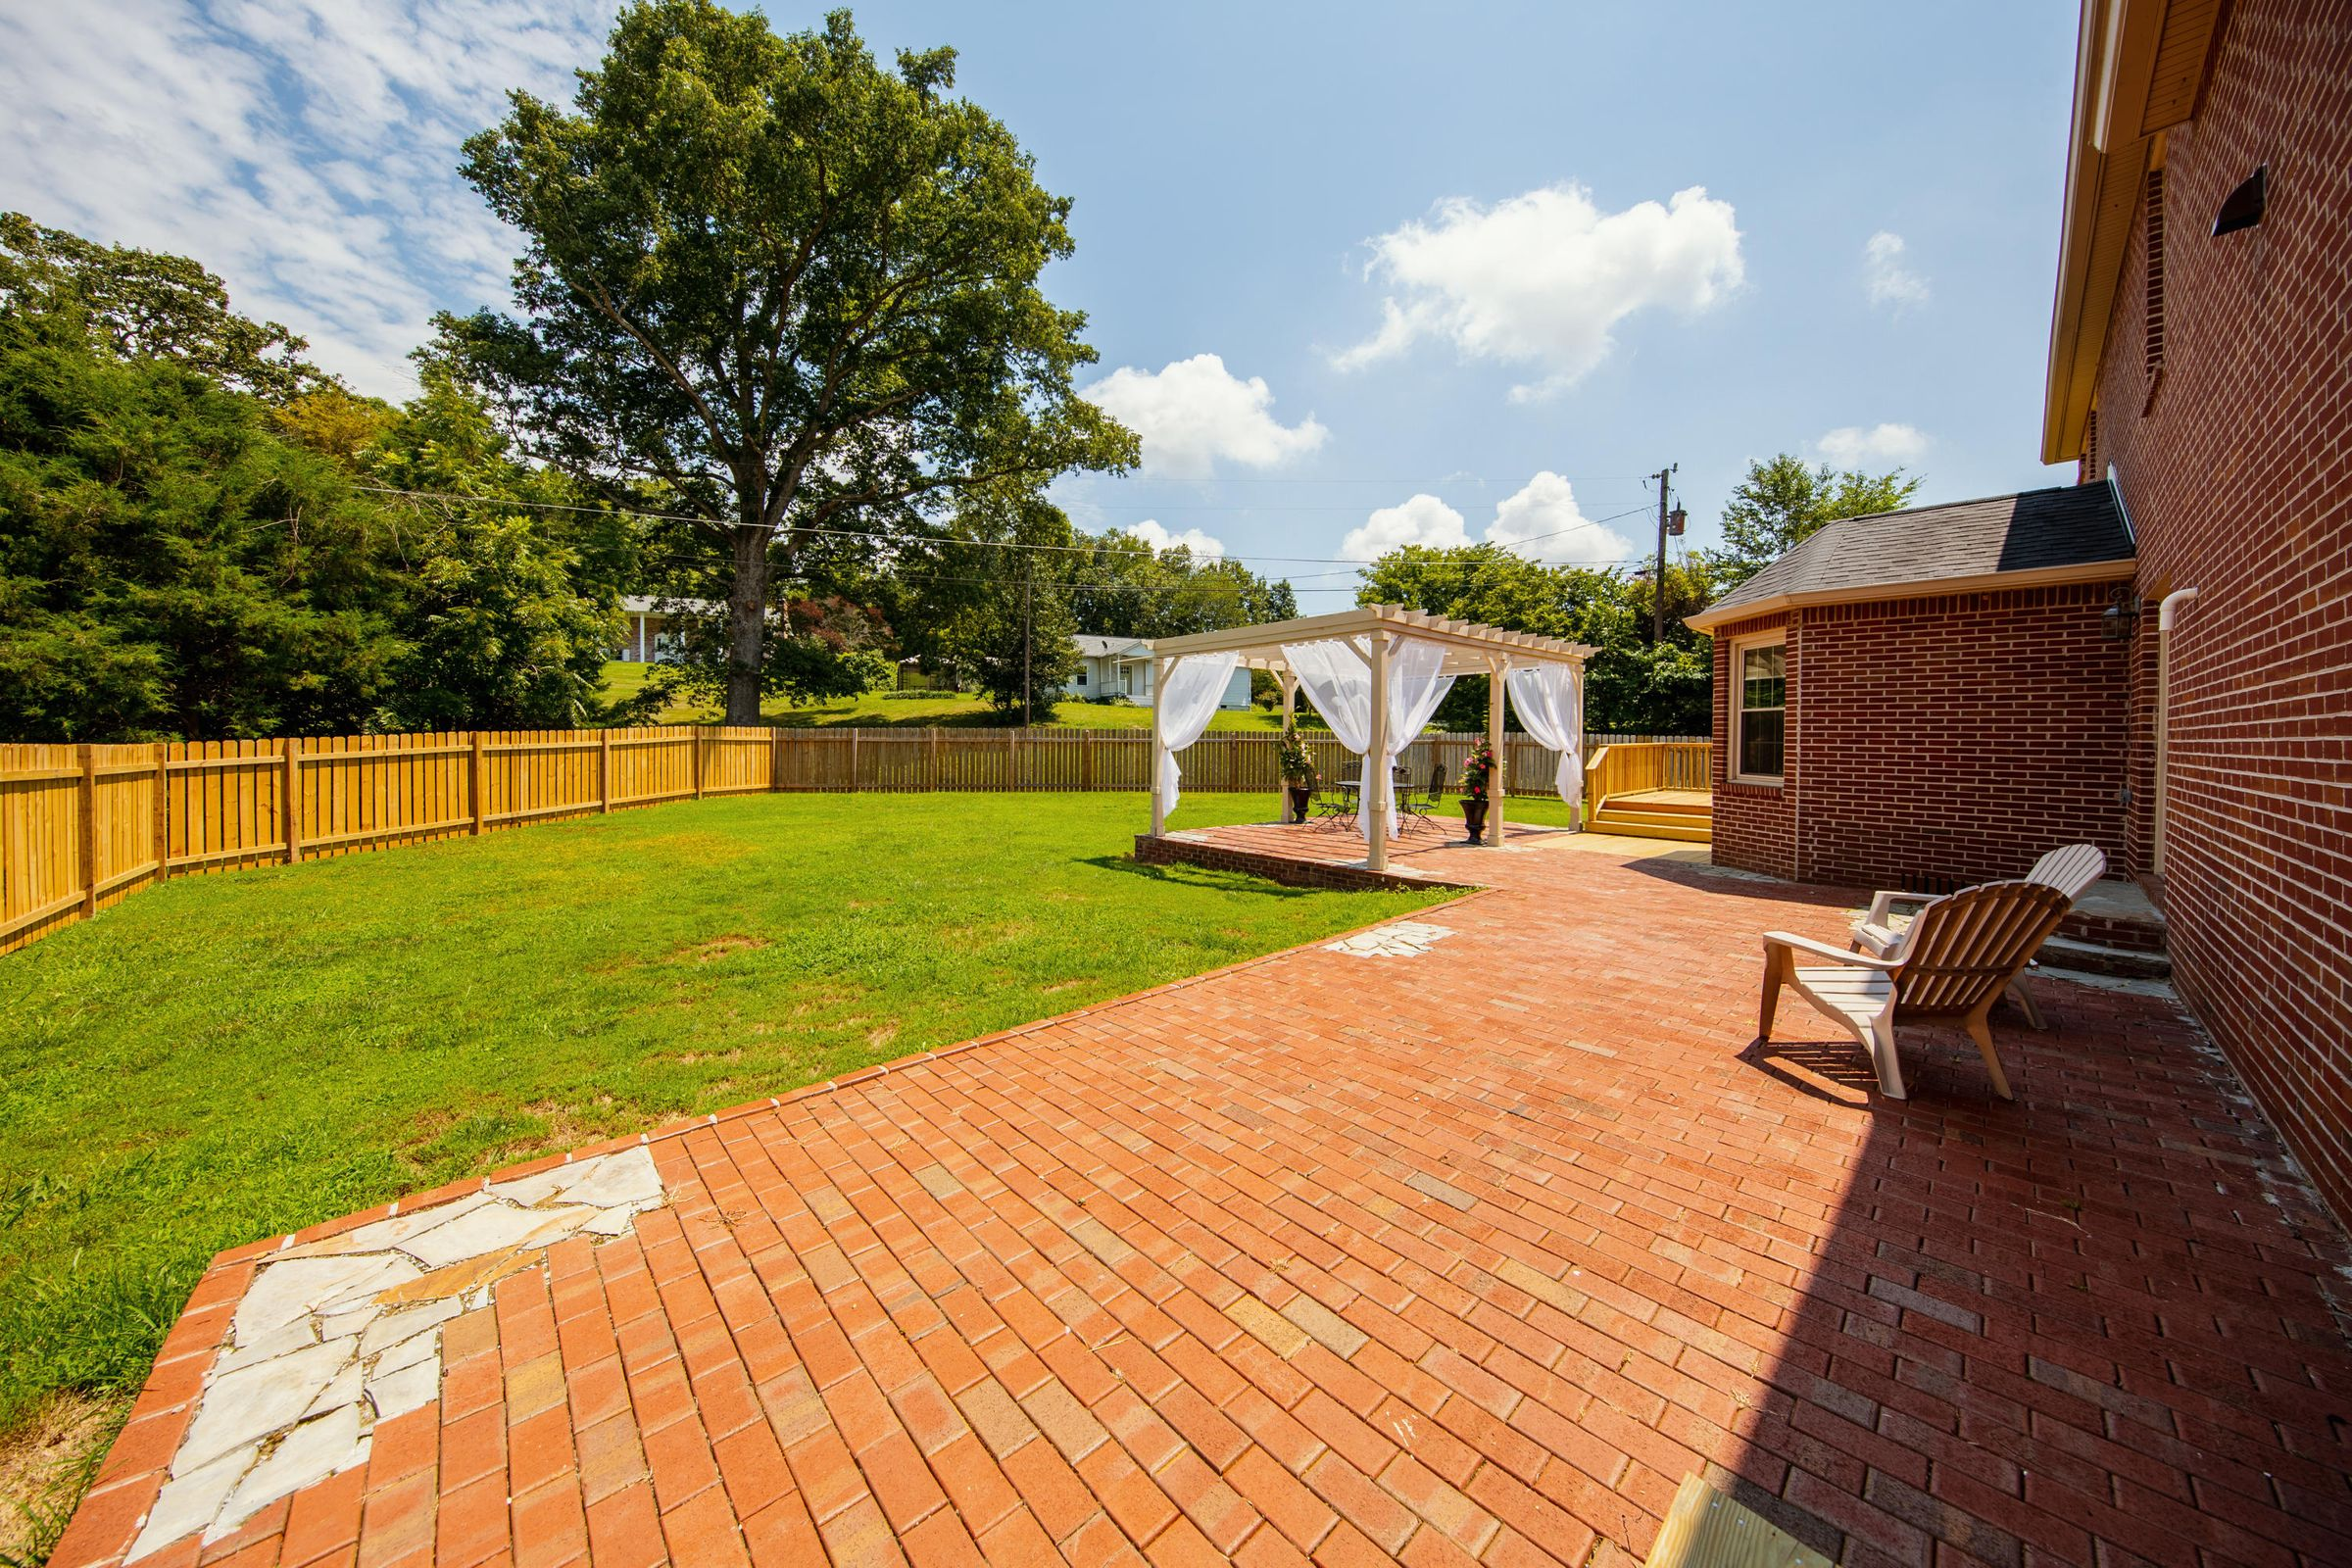 Brick Patio with seating area